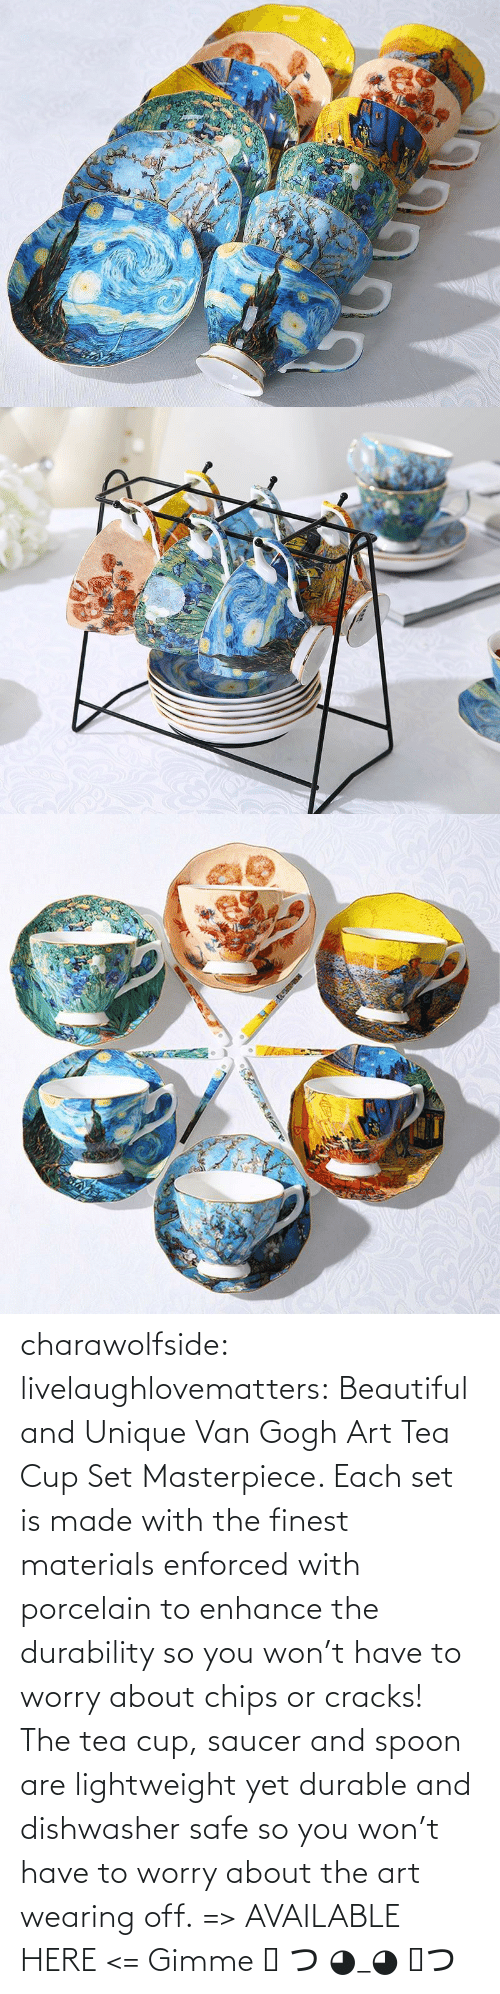 chips: charawolfside: livelaughlovematters:  Beautiful and Unique Van Gogh Art Tea Cup Set Masterpiece. Each set is made with the finest materials enforced with porcelain to enhance the durability so you won't have to worry about chips or cracks! The tea cup, saucer and spoon are lightweight yet durable and dishwasher safe so you won't have to worry about the art wearing off. => AVAILABLE HERE <=    Gimme ༼ つ ◕_◕ ༽つ